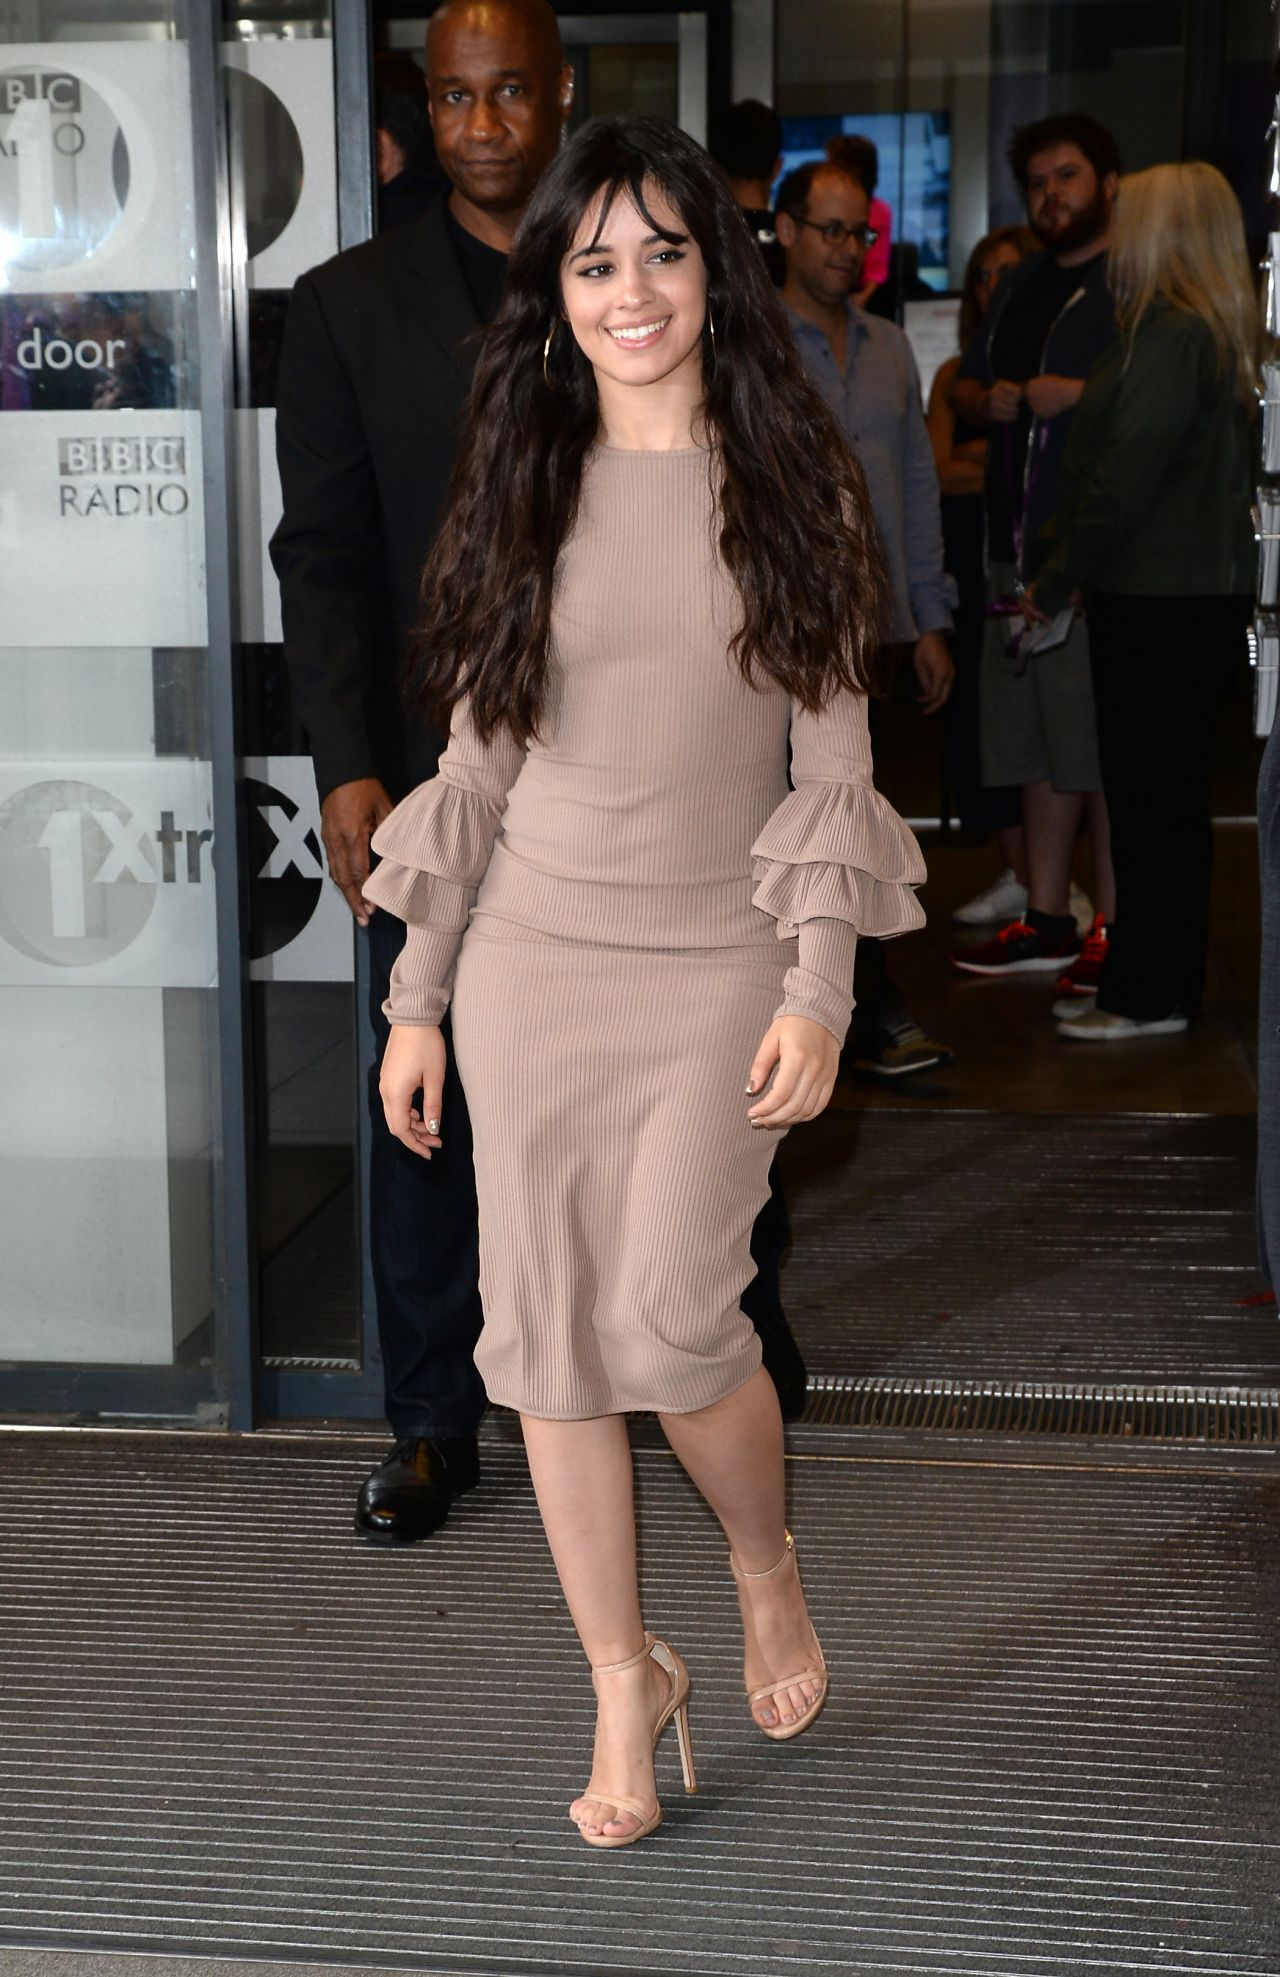 Camila Cabello at The ITV Studios in Central London, UK 05 ...